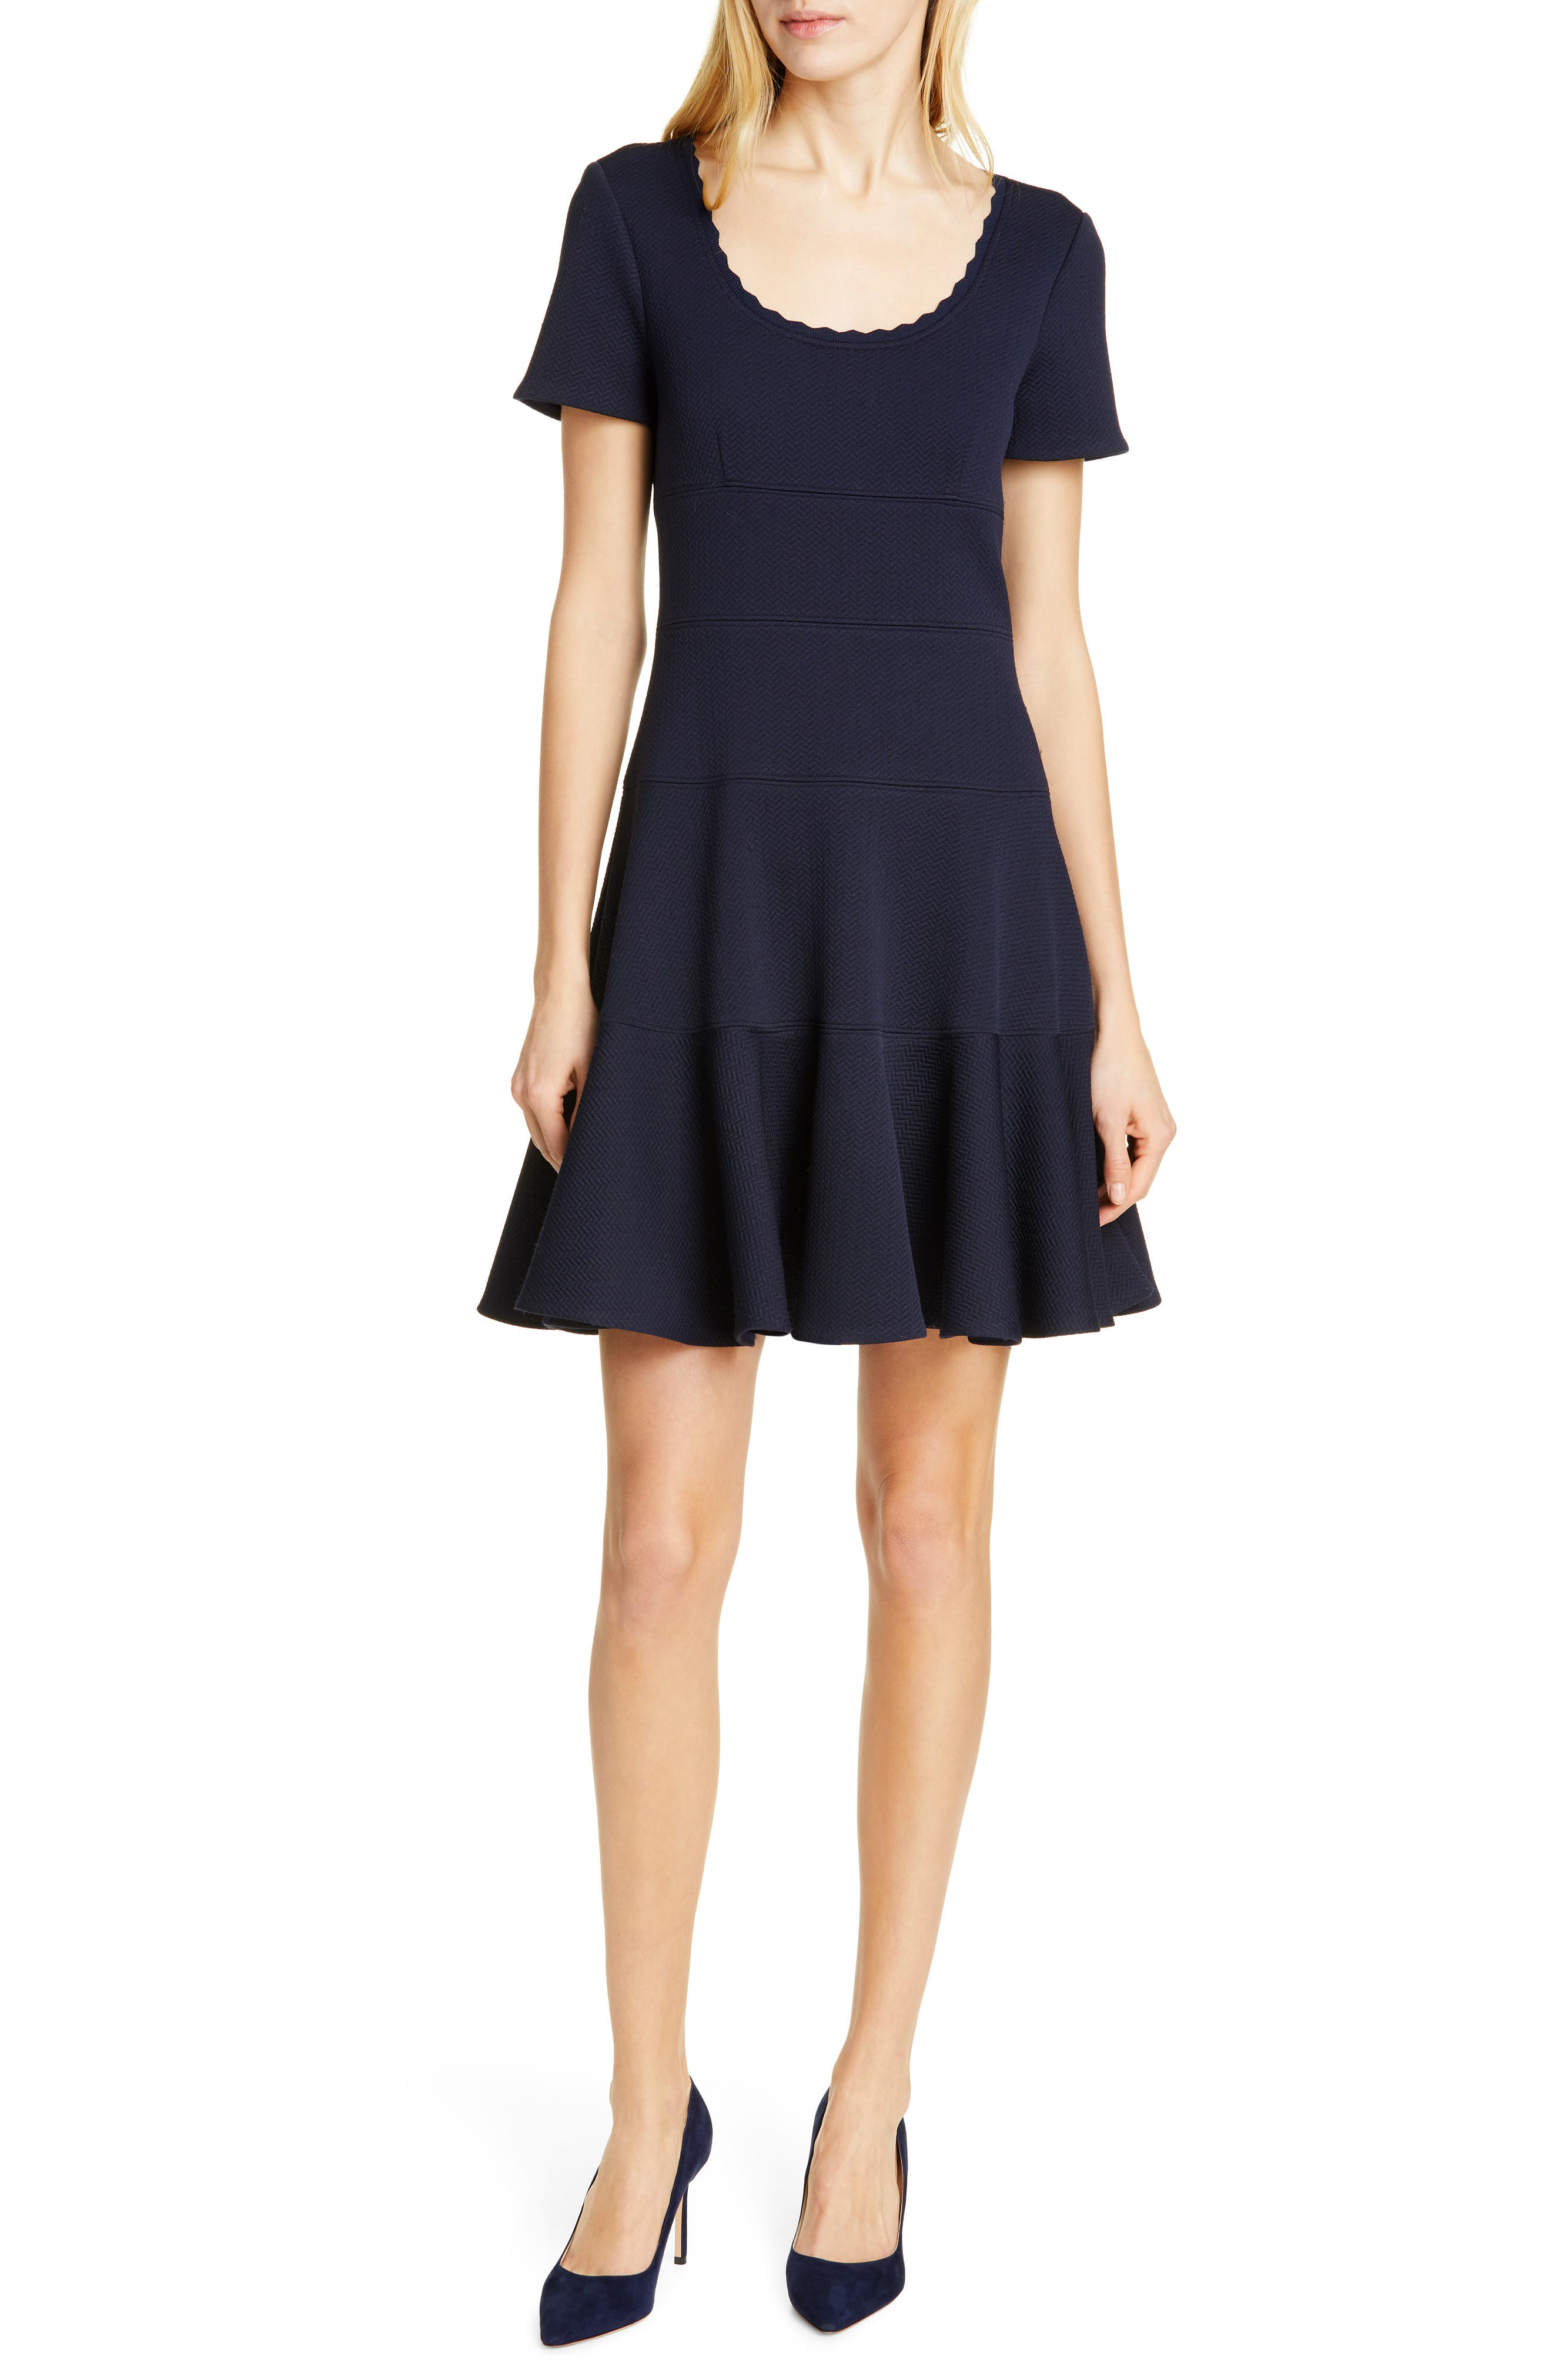 REBECCA TAYLOR, Textured Scallop Detail Fit & Flare Dress, Main thumbnail 1, color, NAVY